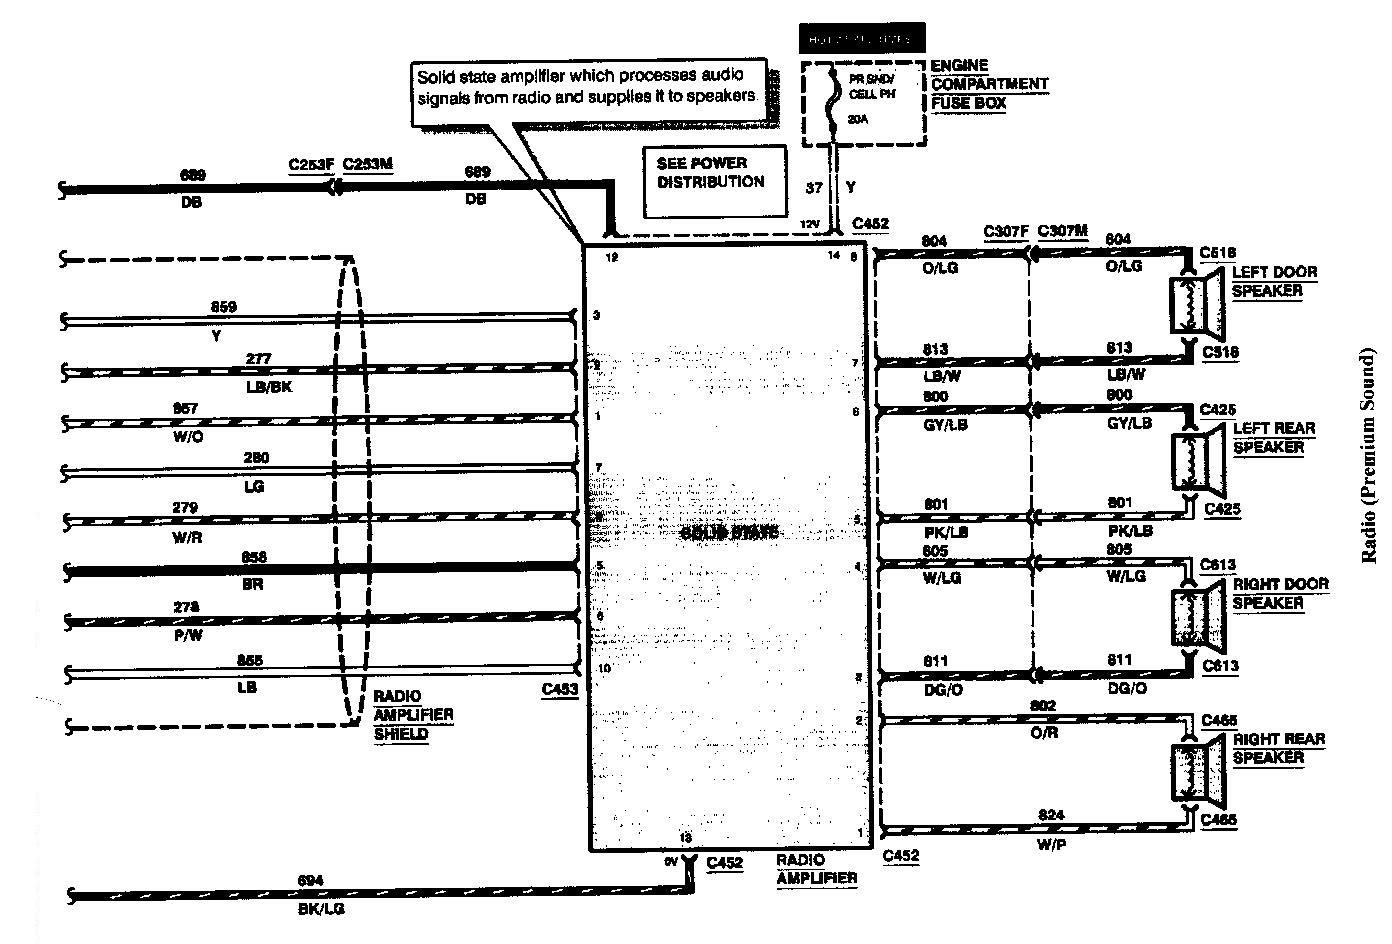 95 Mark 8 Jbl Wiring Diagram Needed Lincolns Online Message Forum